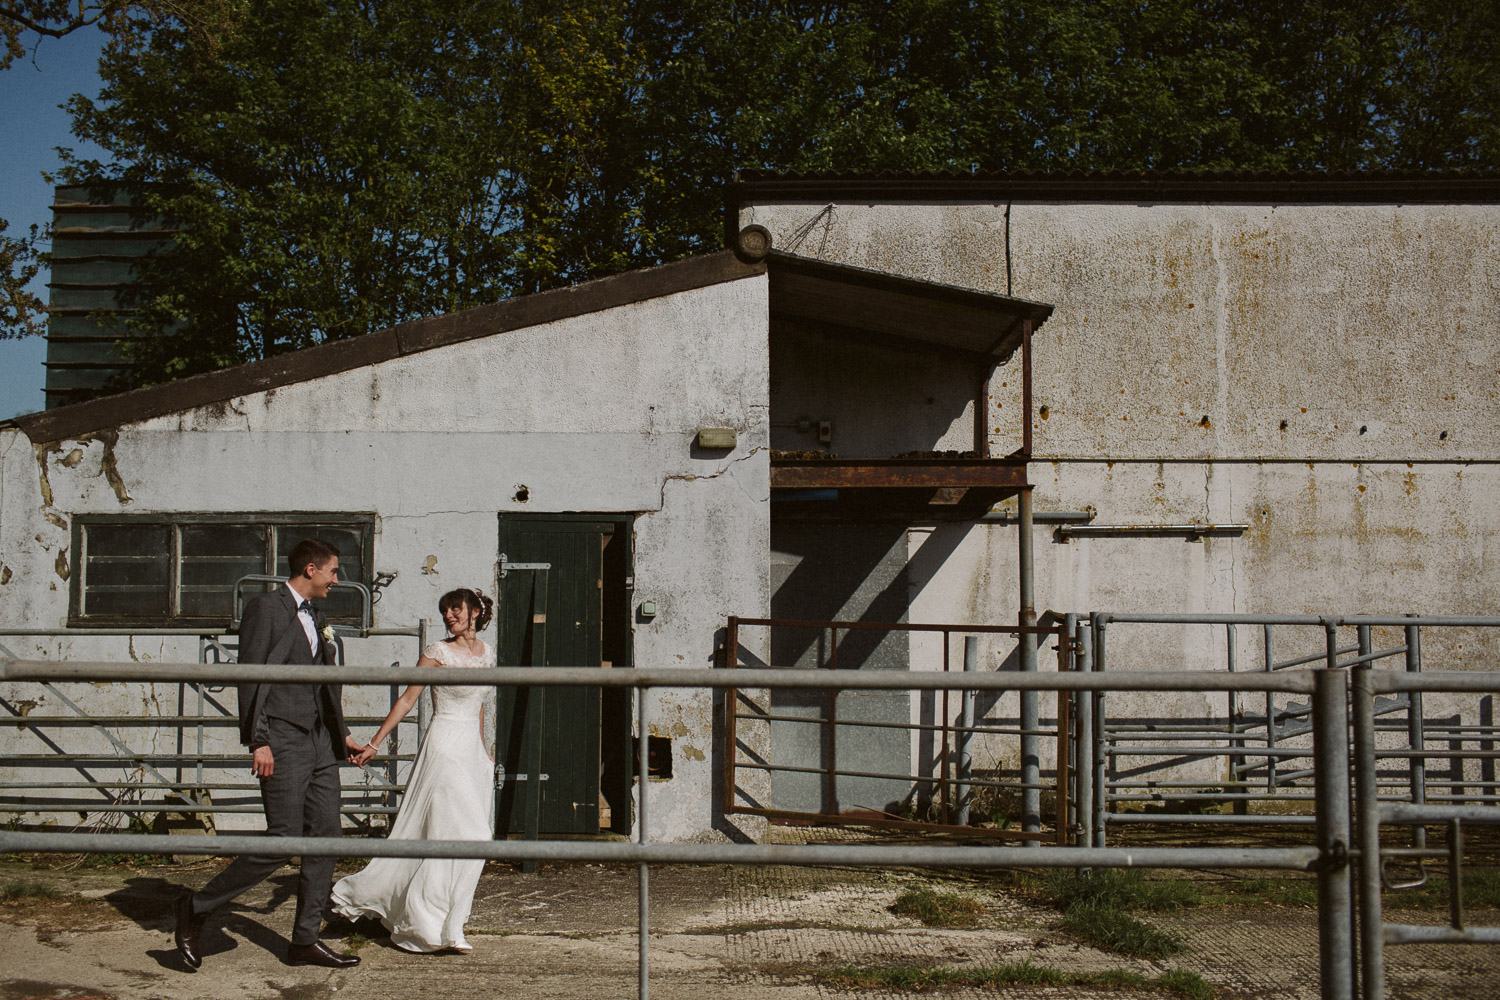 newlyweds walking to a disused cowshed creative lines